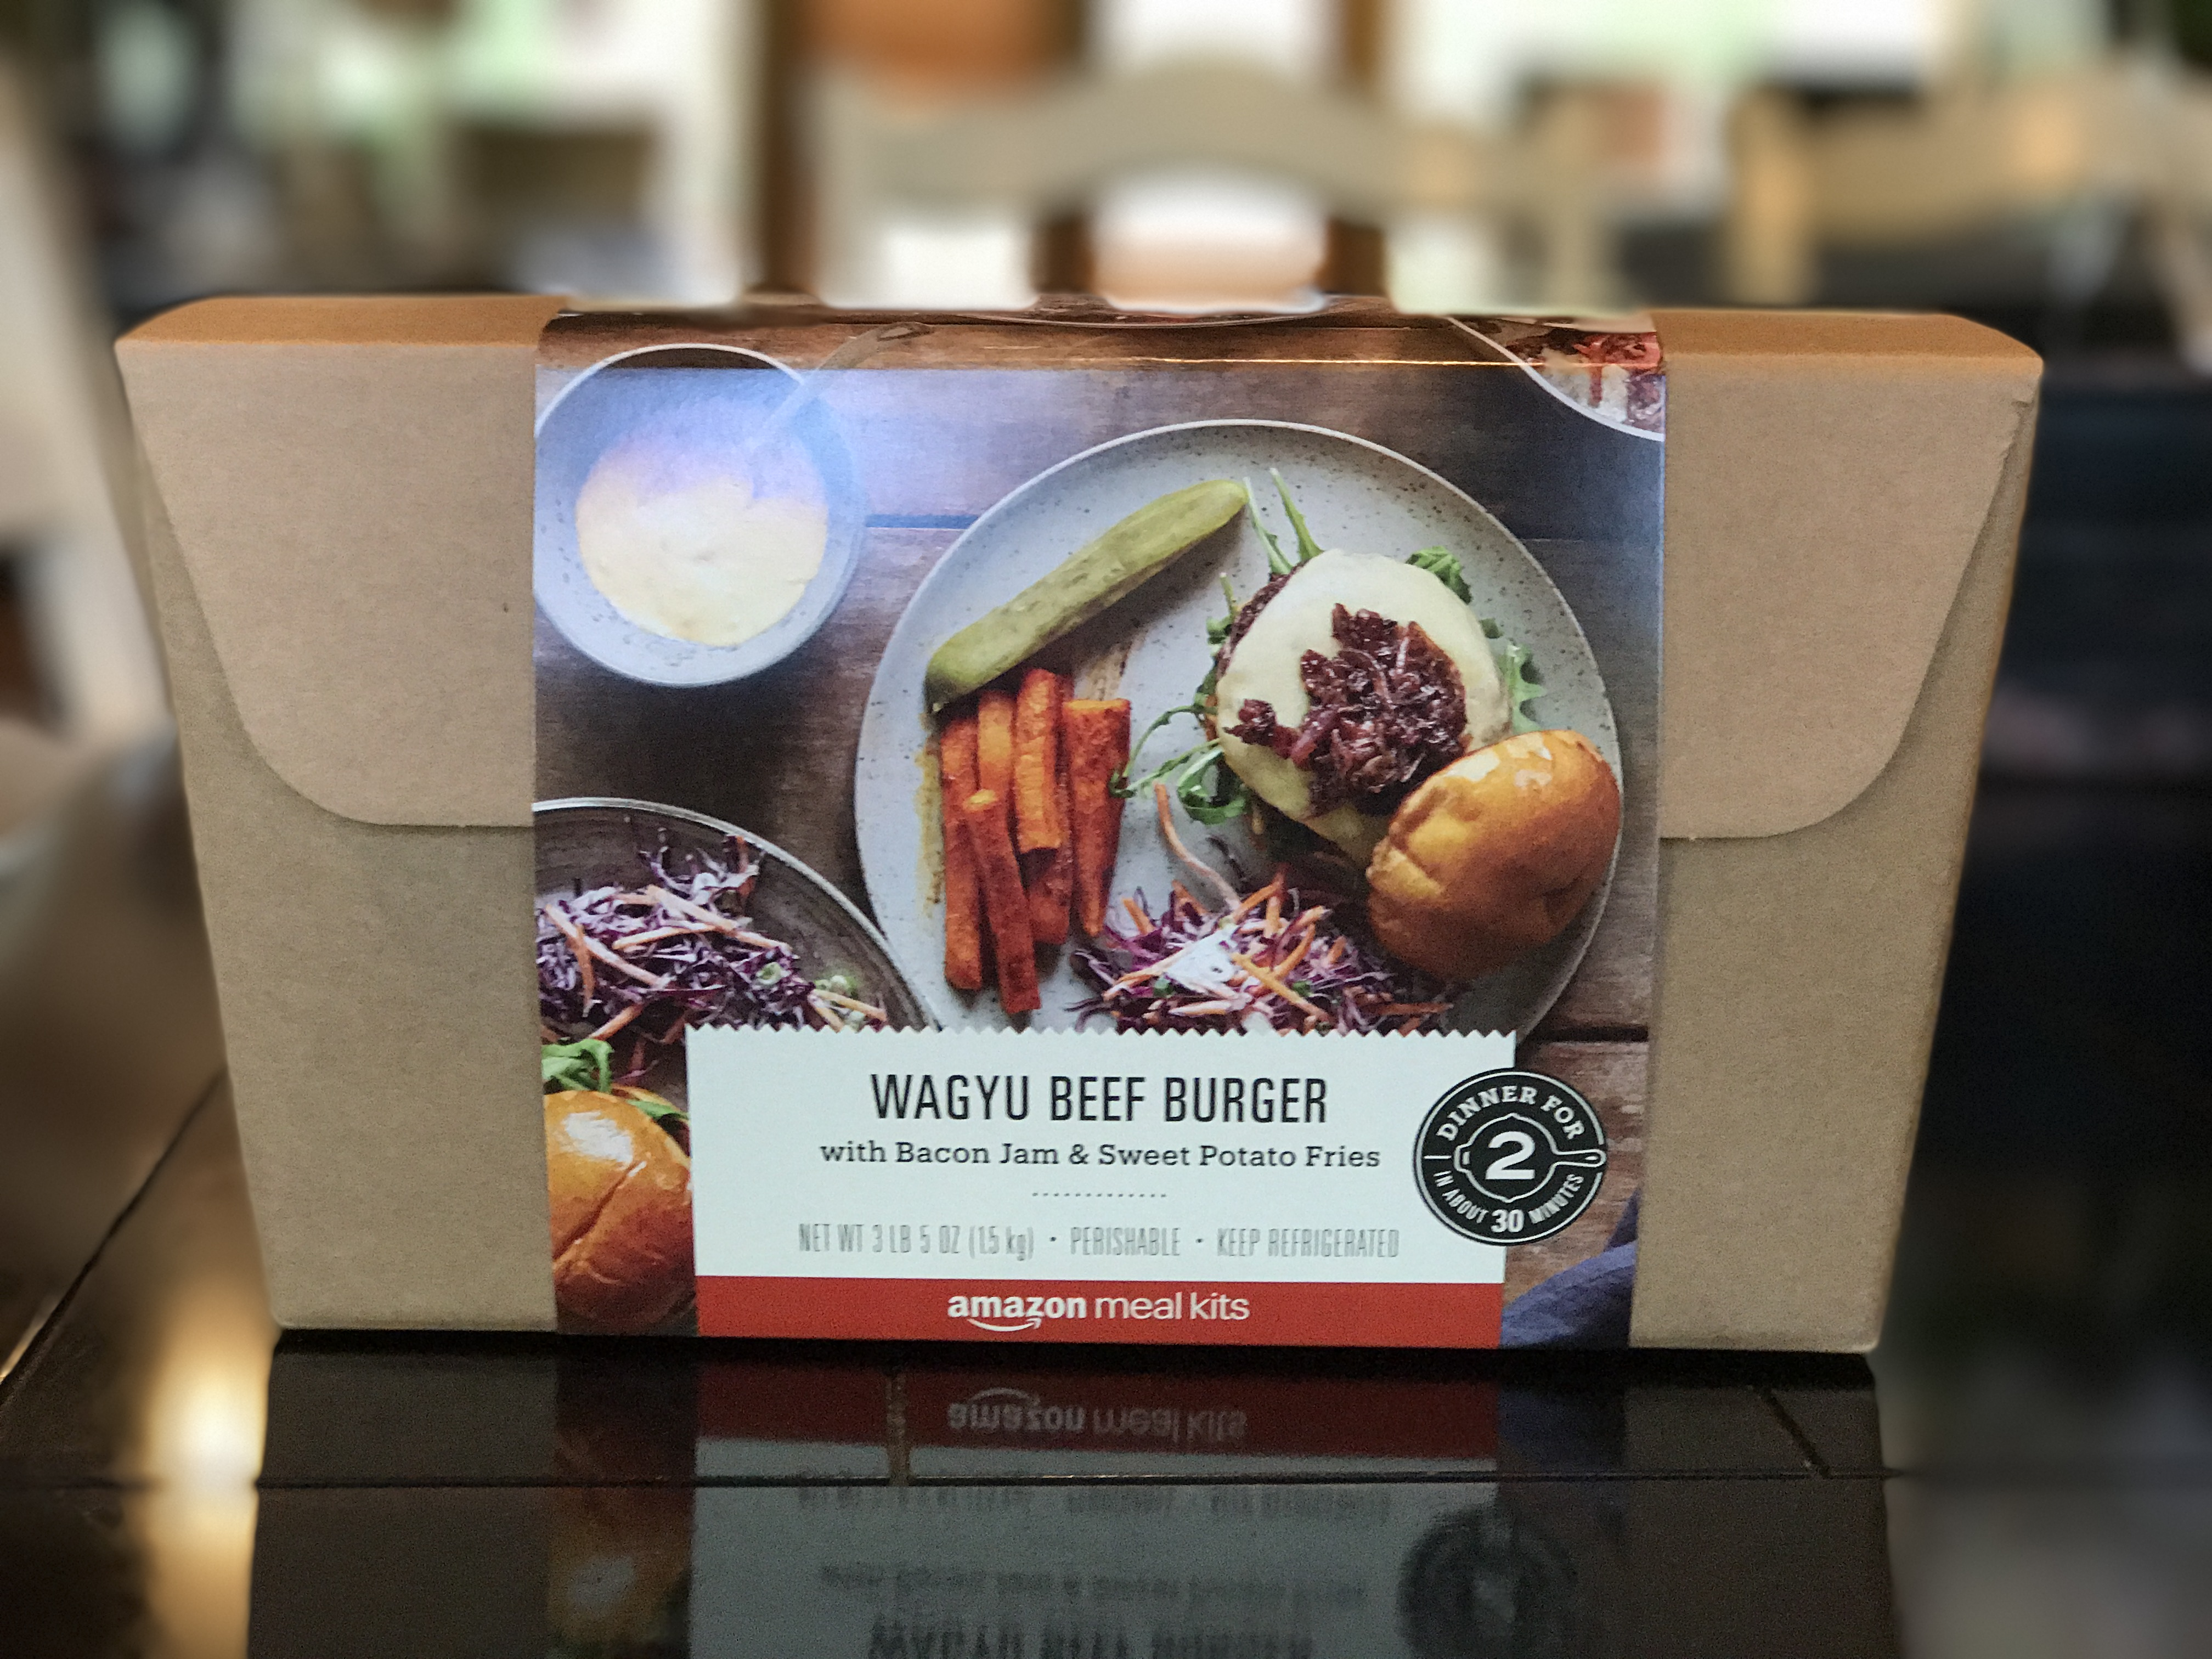 I Made Dinner With An Amazon Meal Kit. Here's My Review